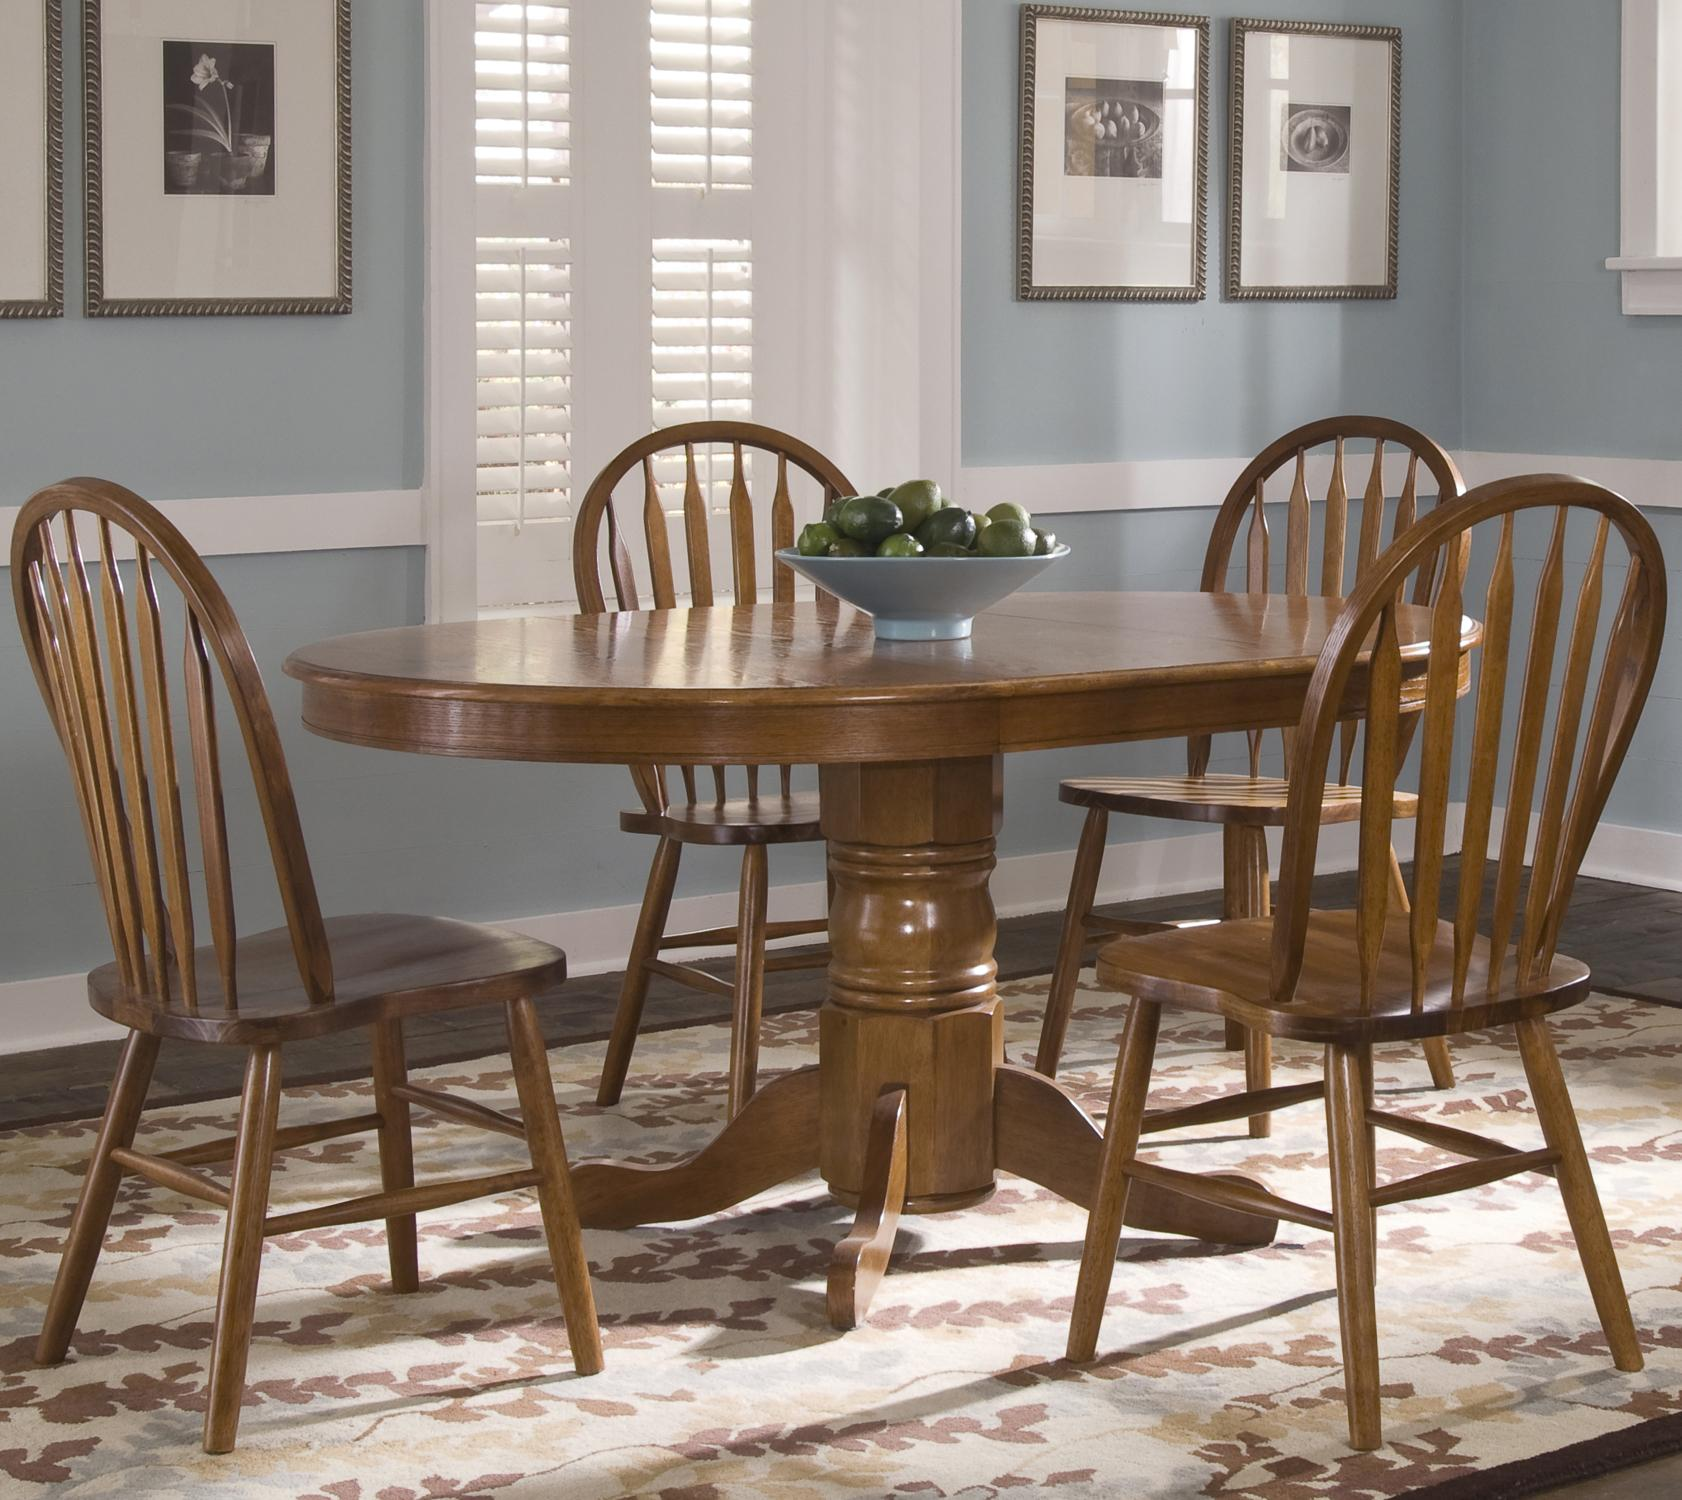 Oval Pedestal Dinner Table w/ 4 Windsor Side Chairs & Oval Pedestal Dinner Table w/ 4 Windsor Side Chairs by Liberty ...